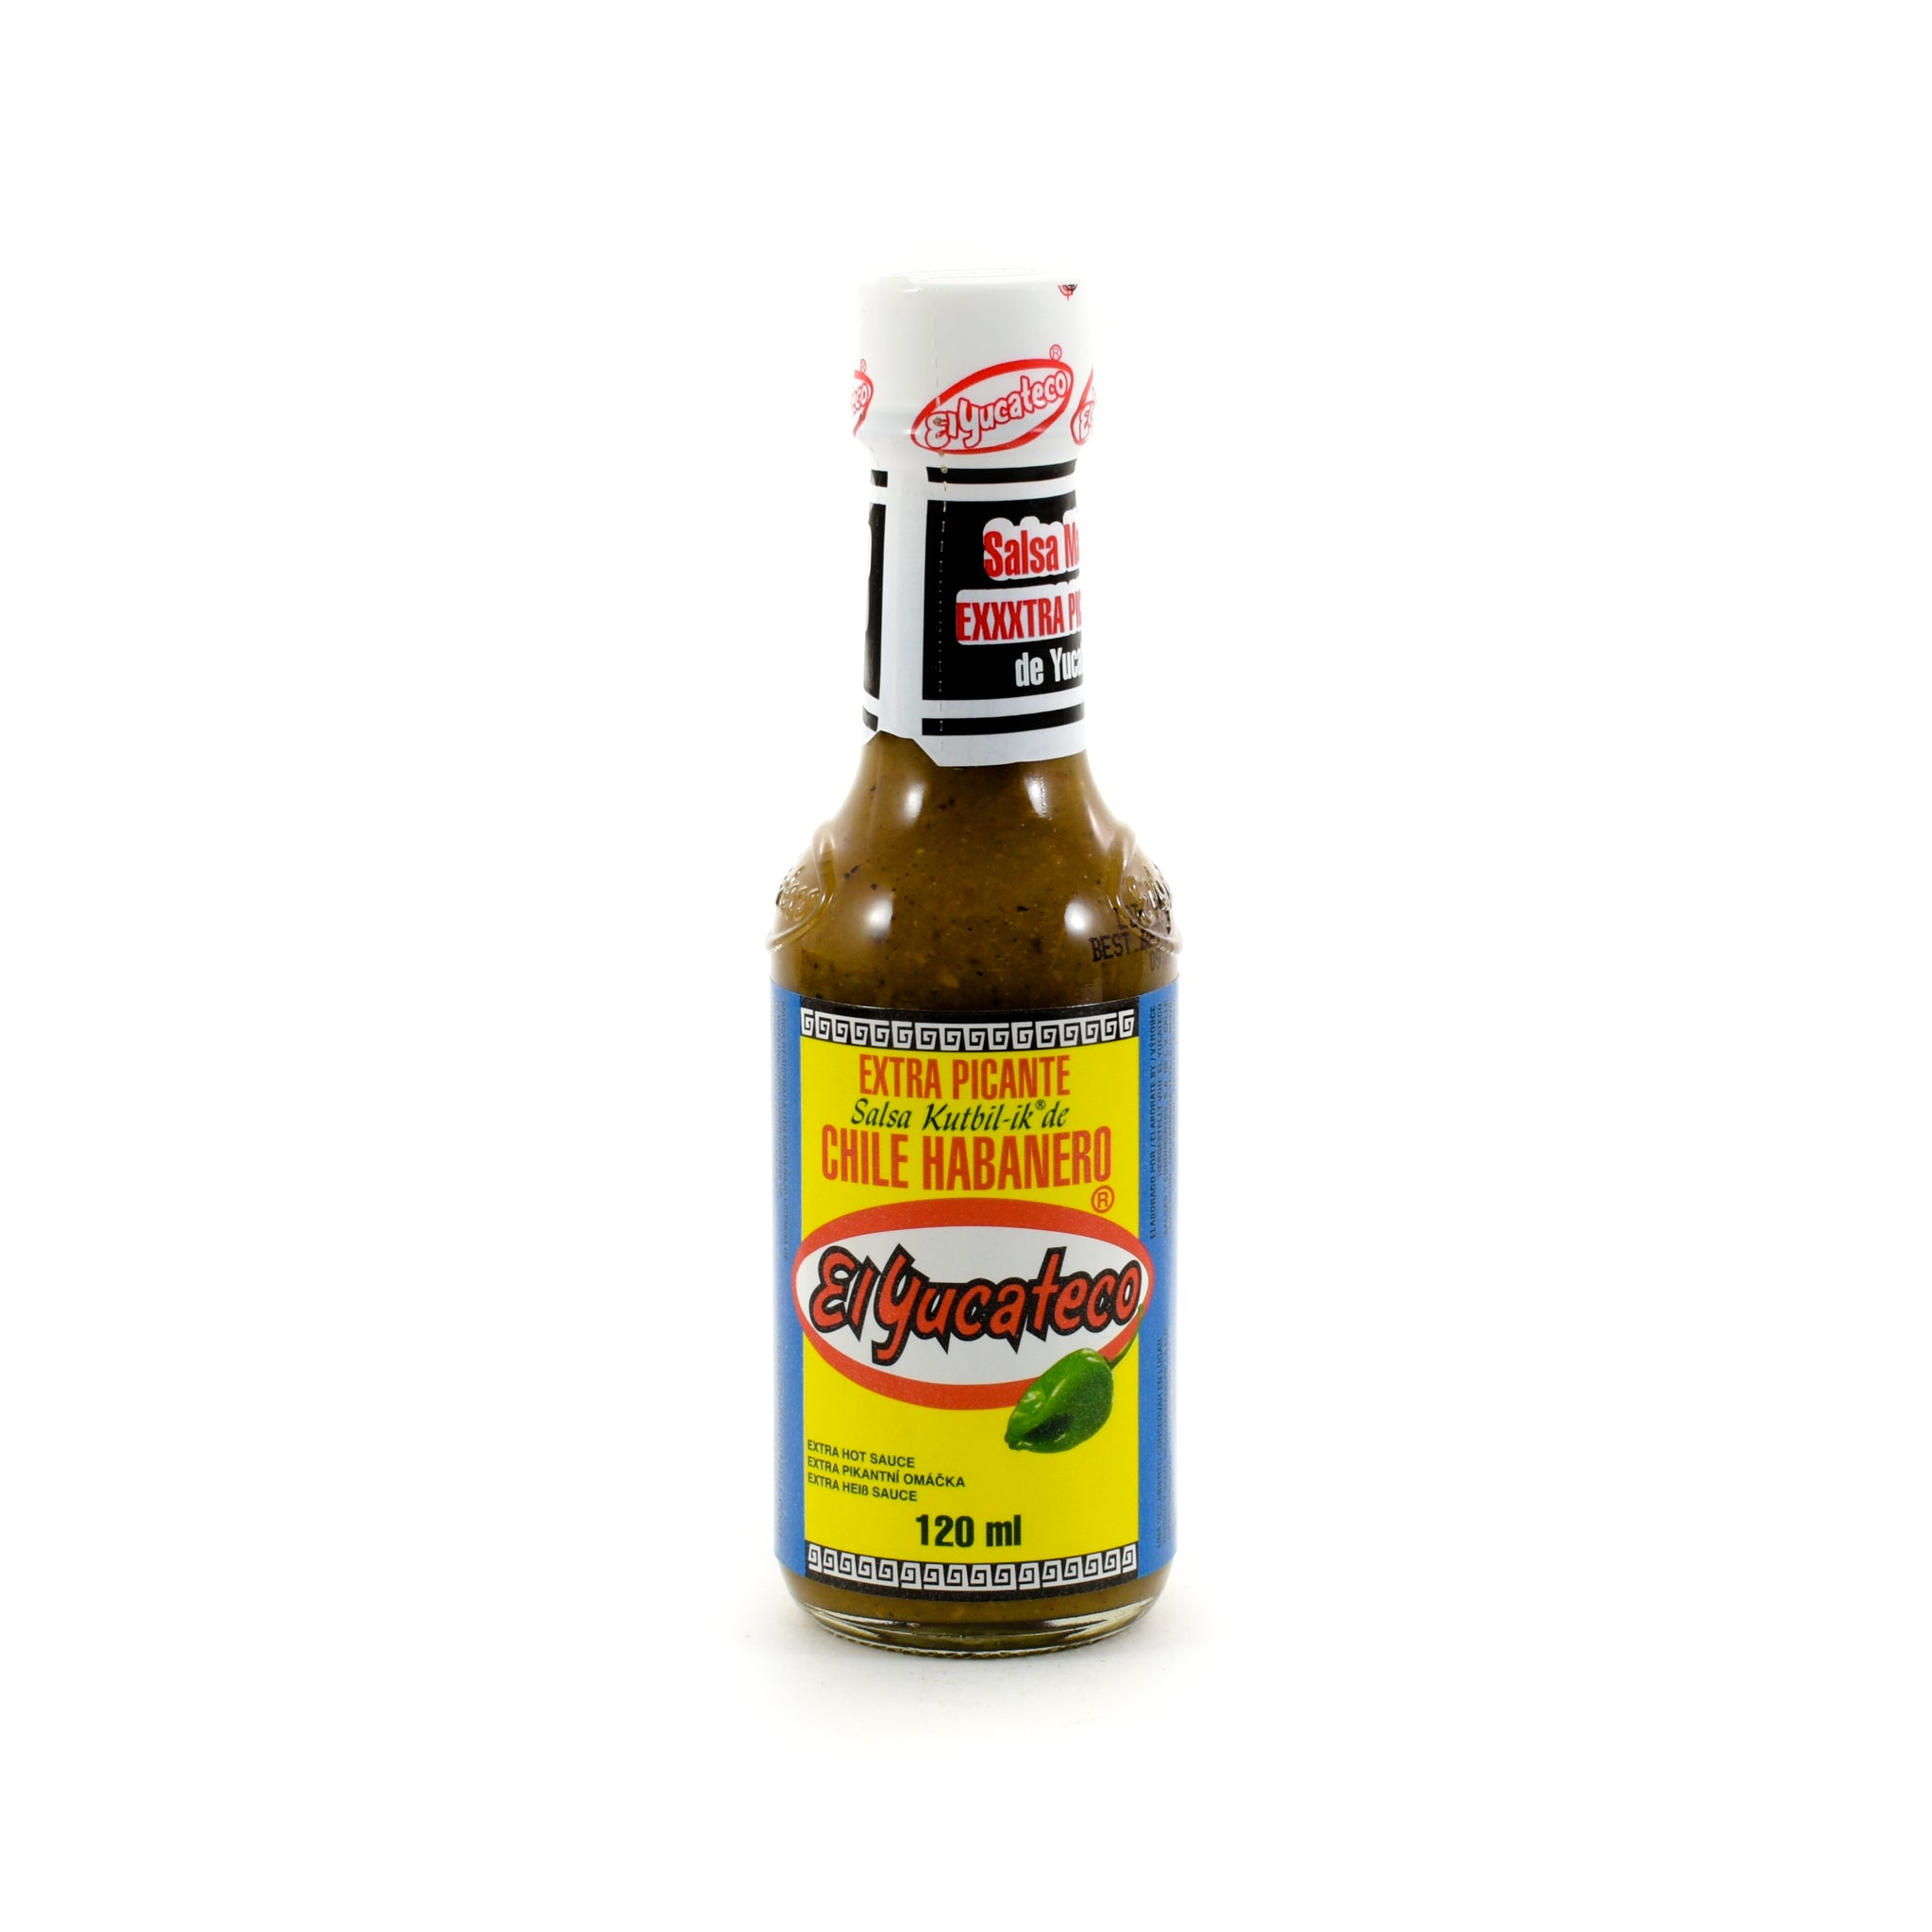 El Yucateco Habanero Kutbil-Ik Frasco Hot Sauce 120ml